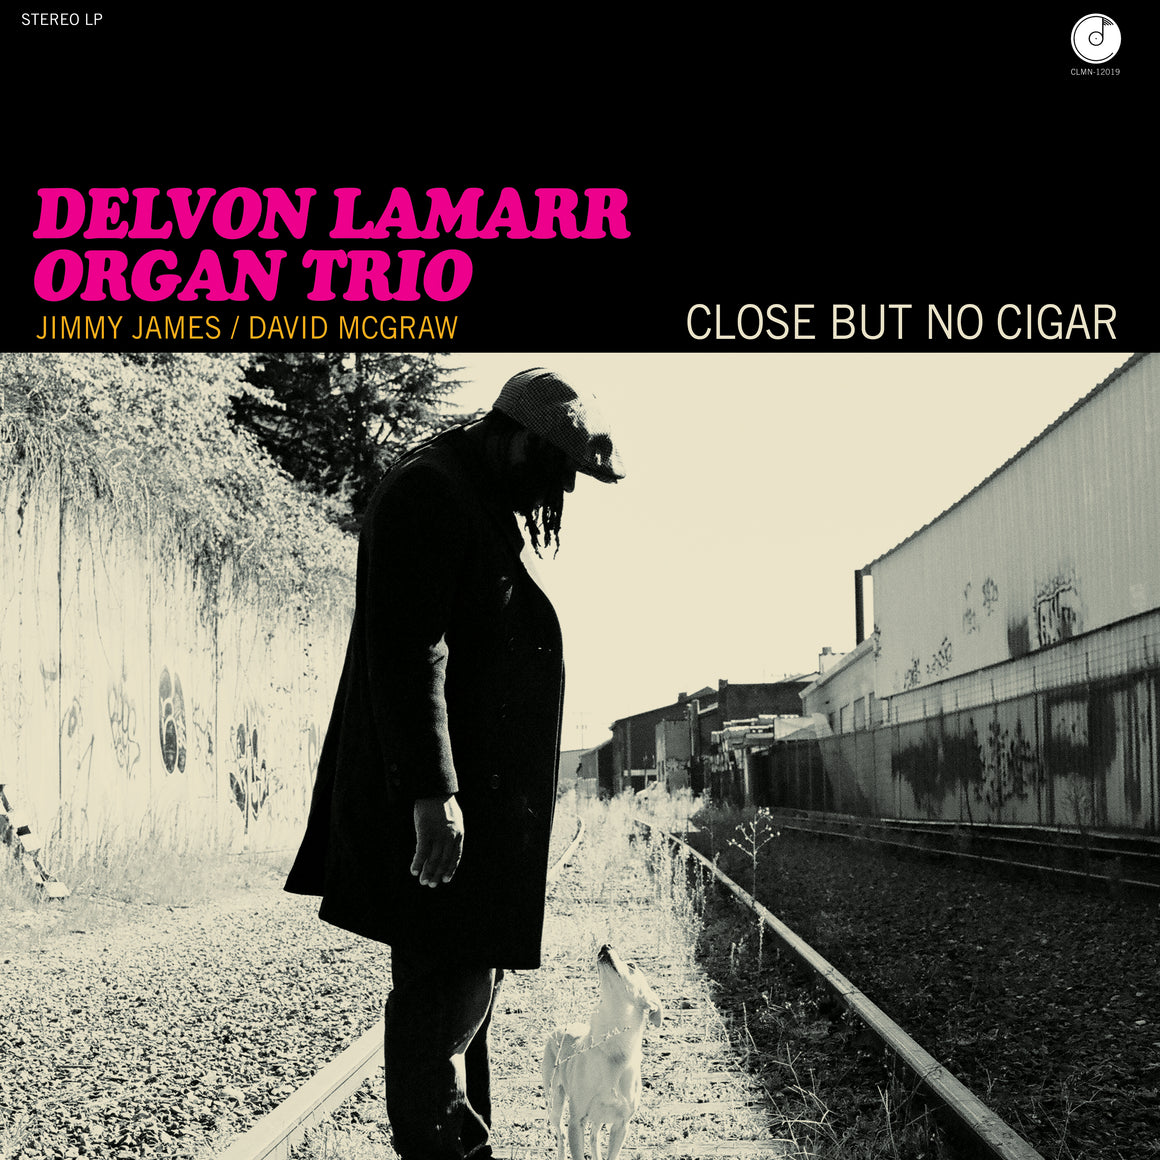 <b>DELVON LAMARR ORGAN TRIO</b><br><i>Close But No Cigar</i><br> CD